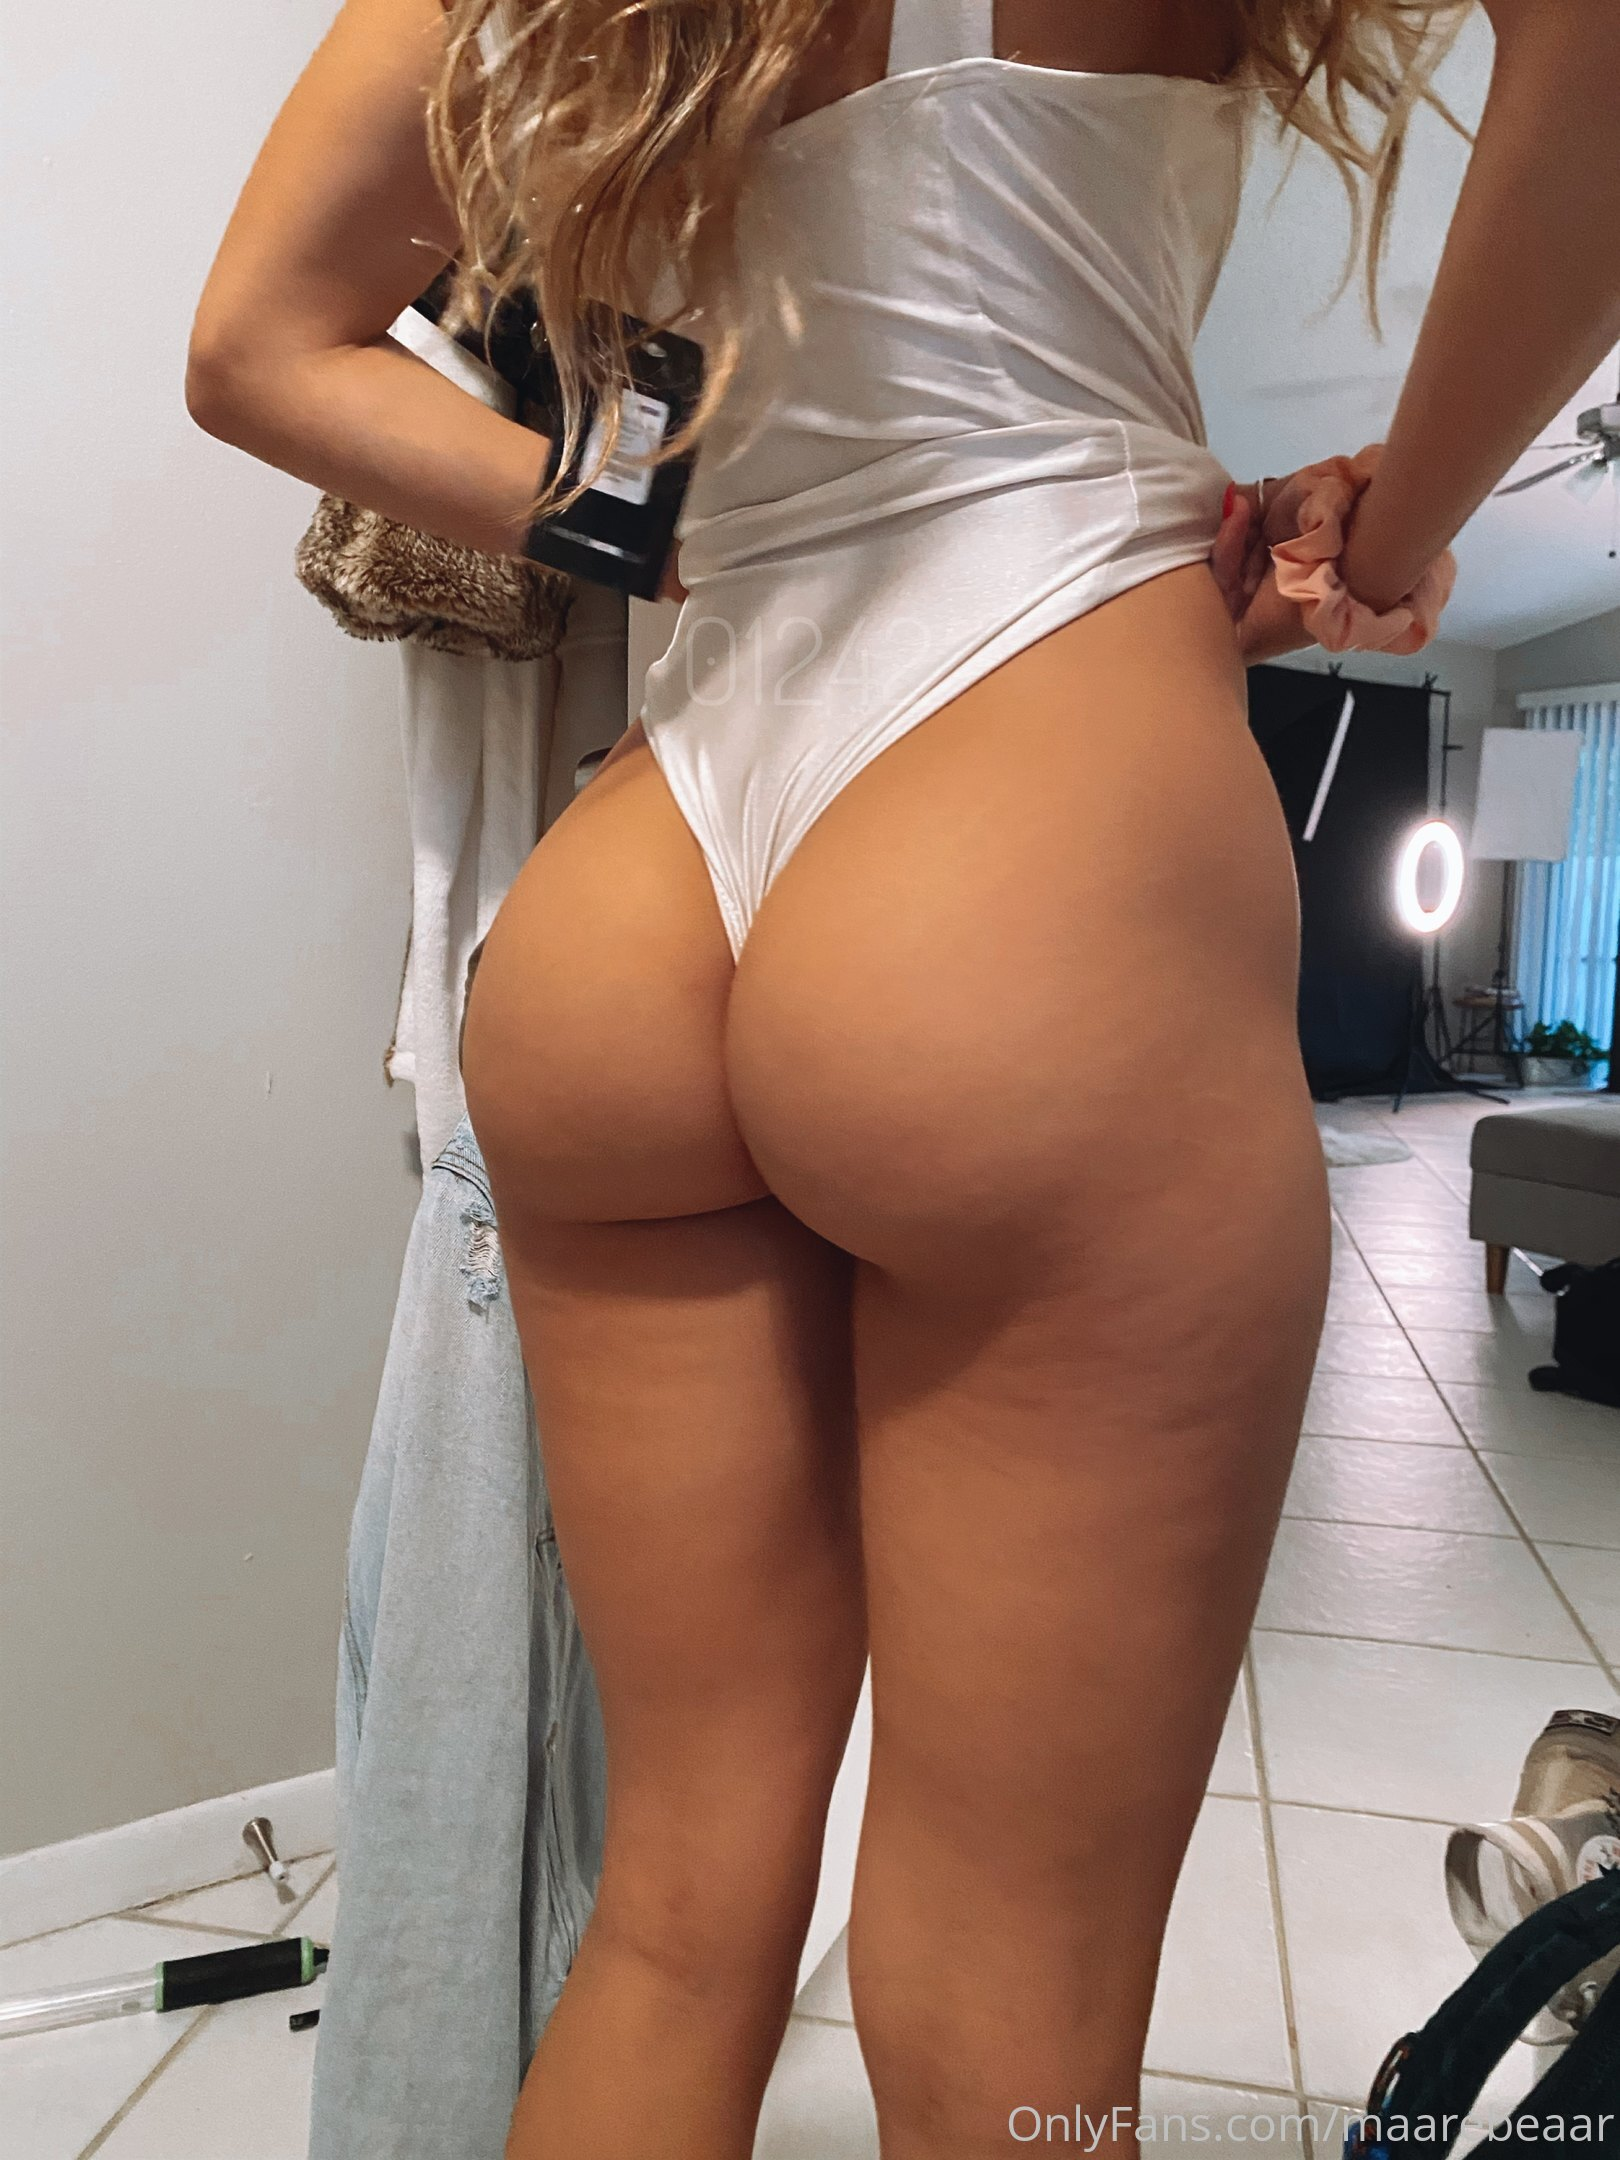 Mariana Morais Onlyfans 0040